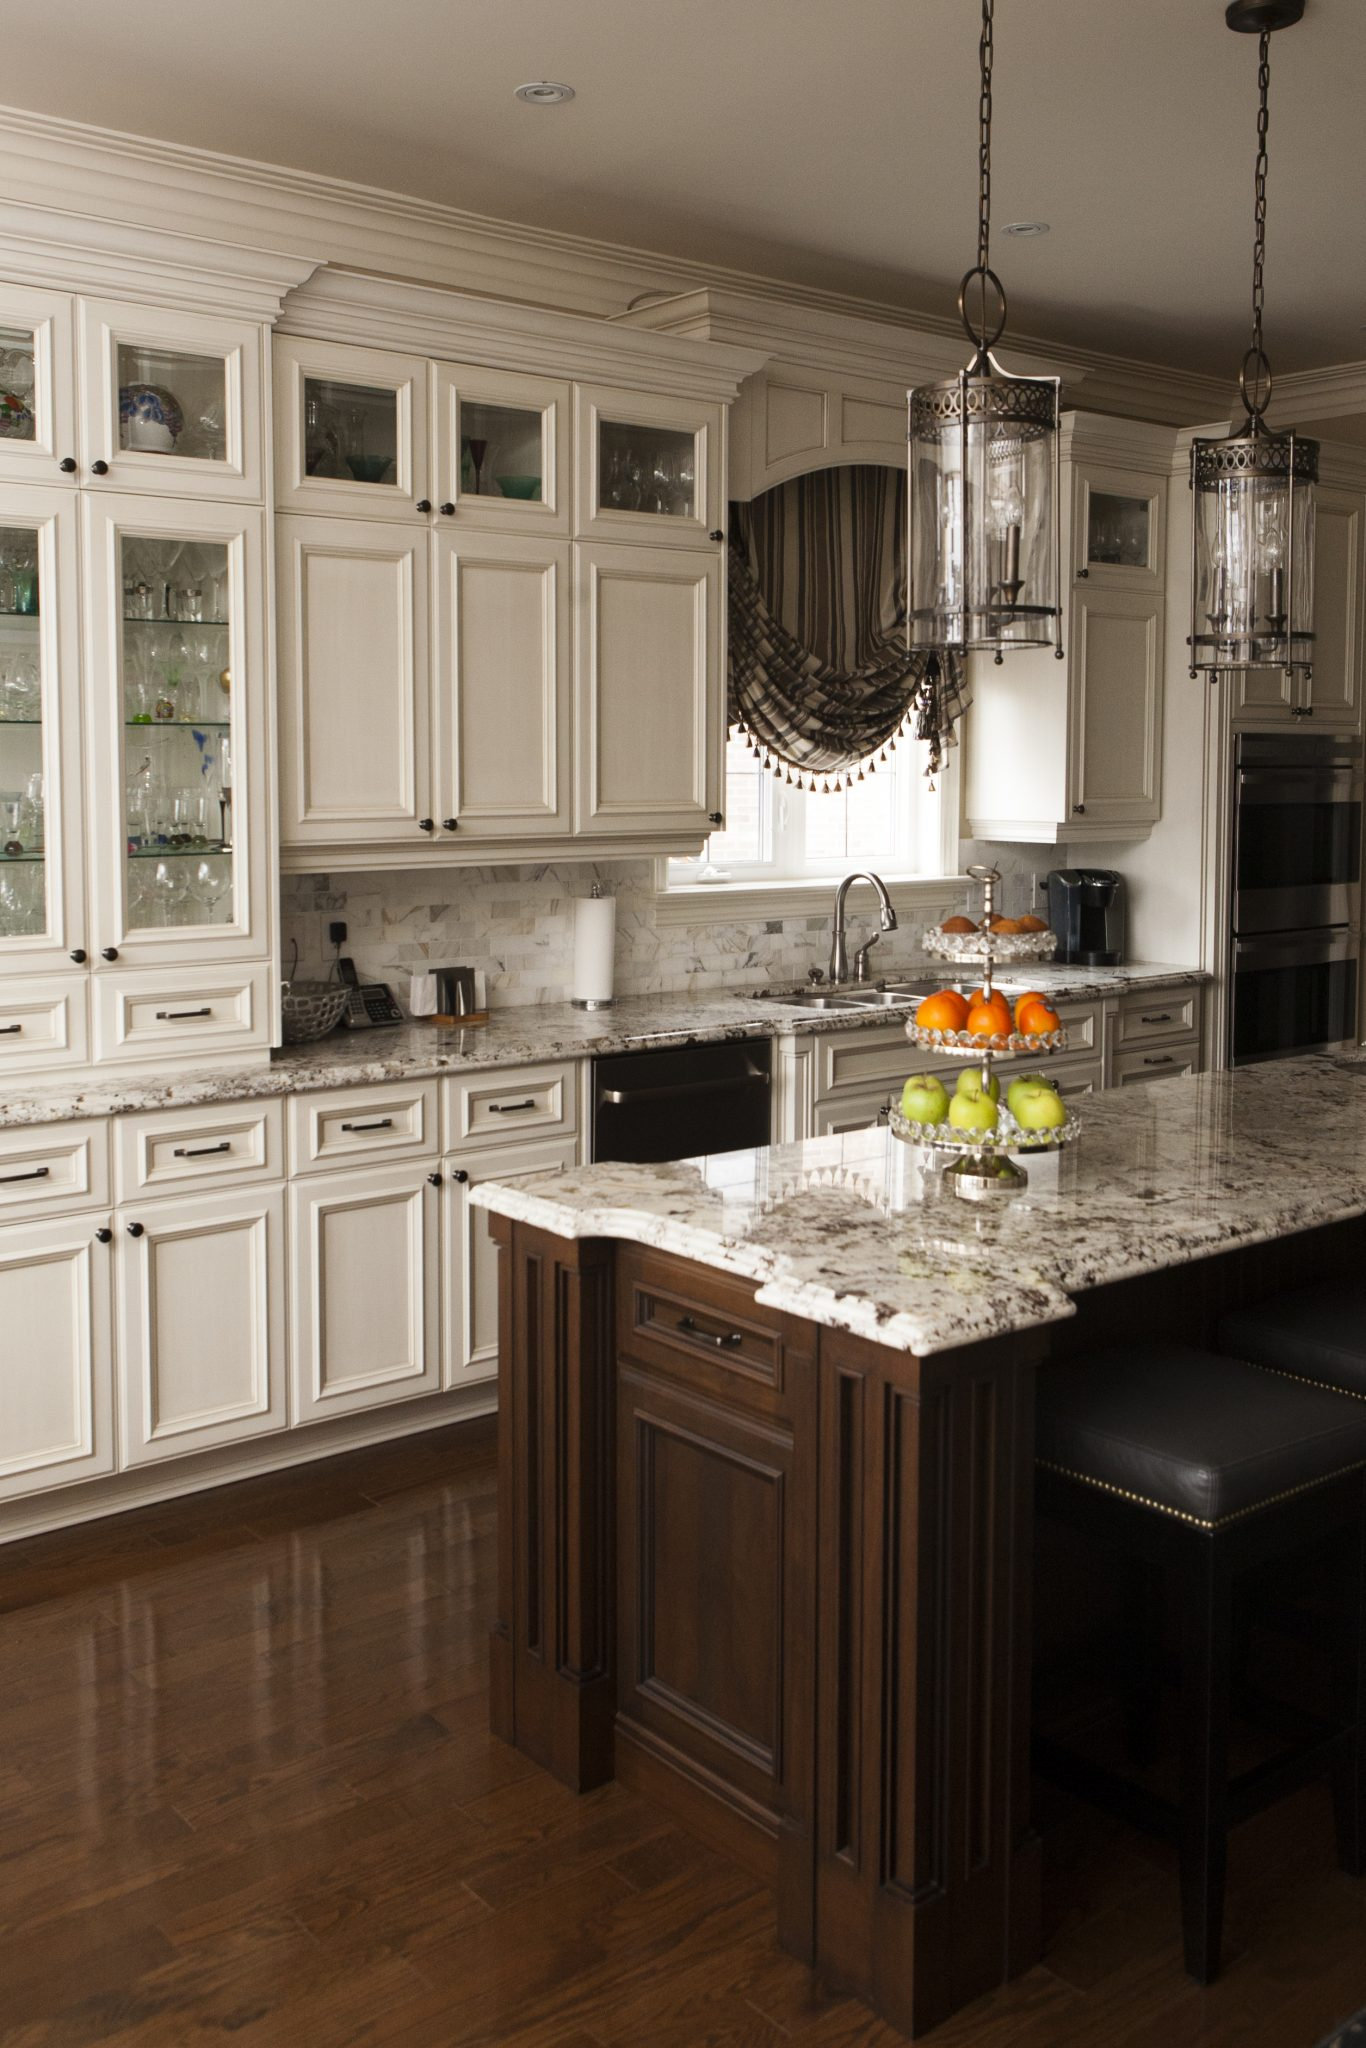 design for kitchen images oakdale kitchens custom kitchen and bathroom vanities